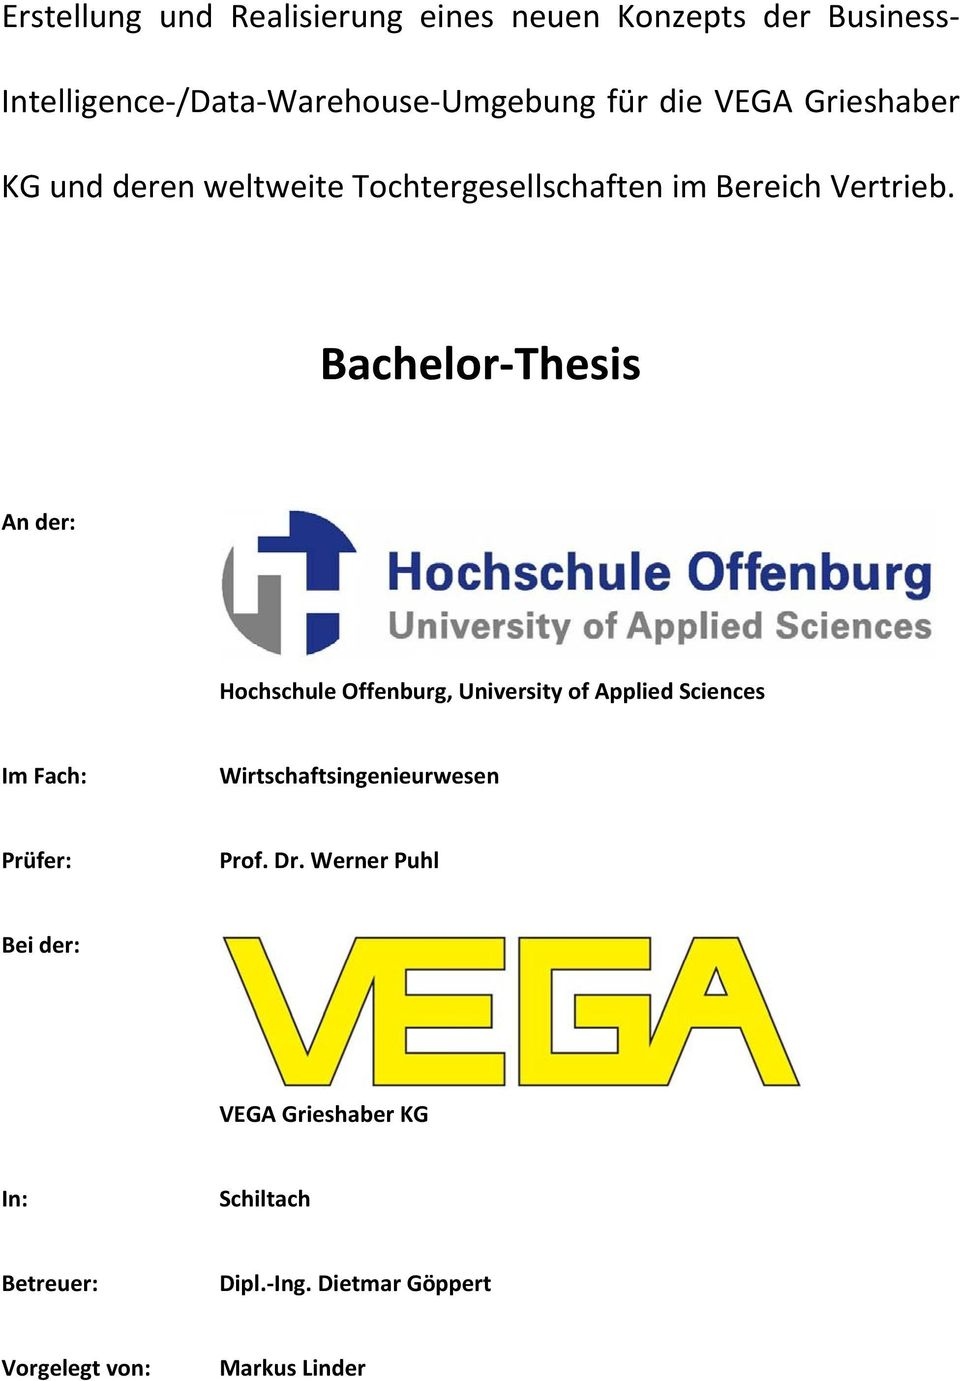 Bachelor Thesis An der: Hochschule Offenburg, University of Applied Sciences Im Fach: